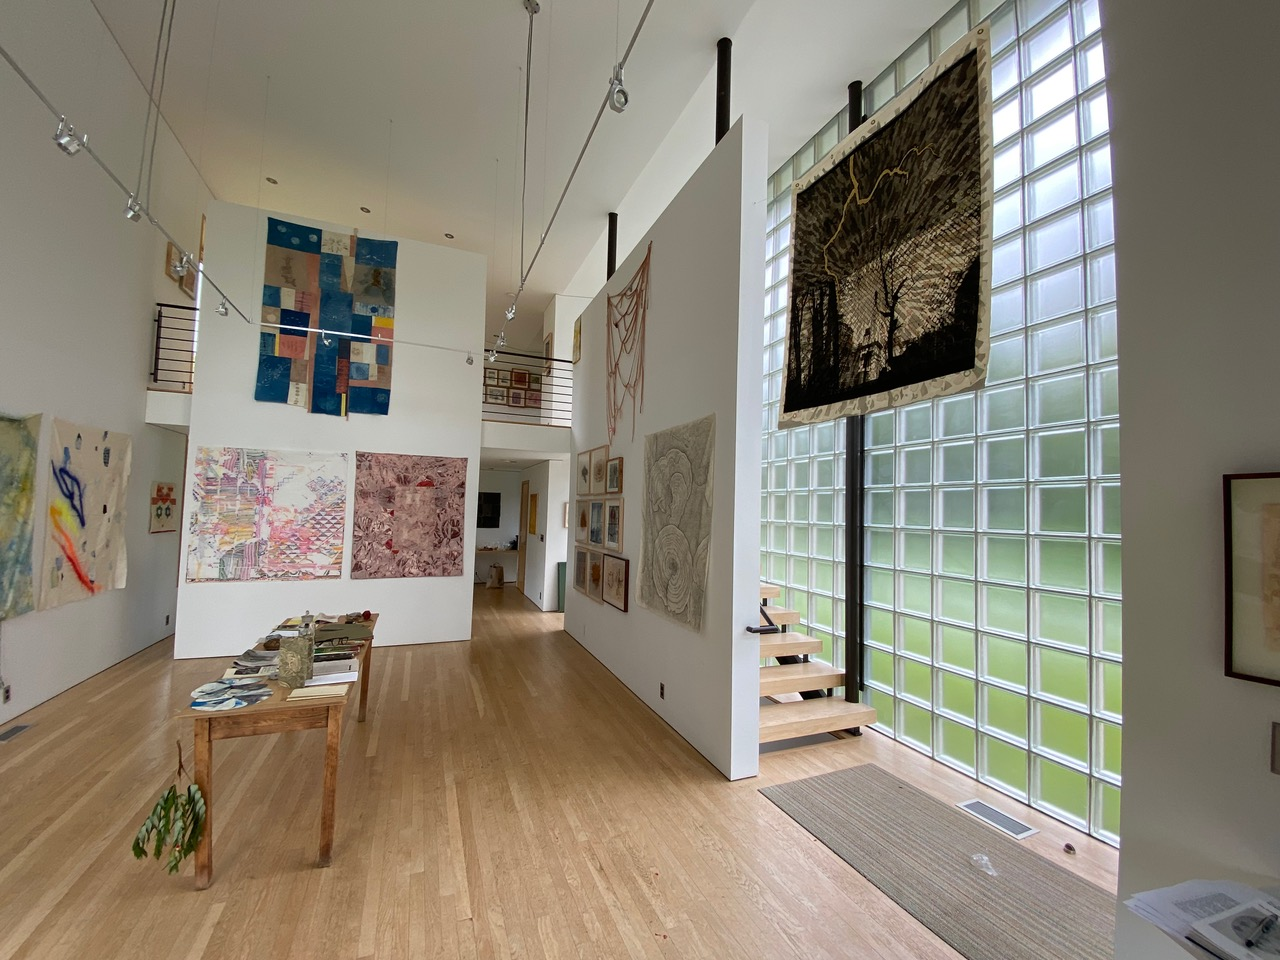 Artwork by members of The Printmakers Left installed at Les Yeux Du Monde Gallery in Charlottesville, VA